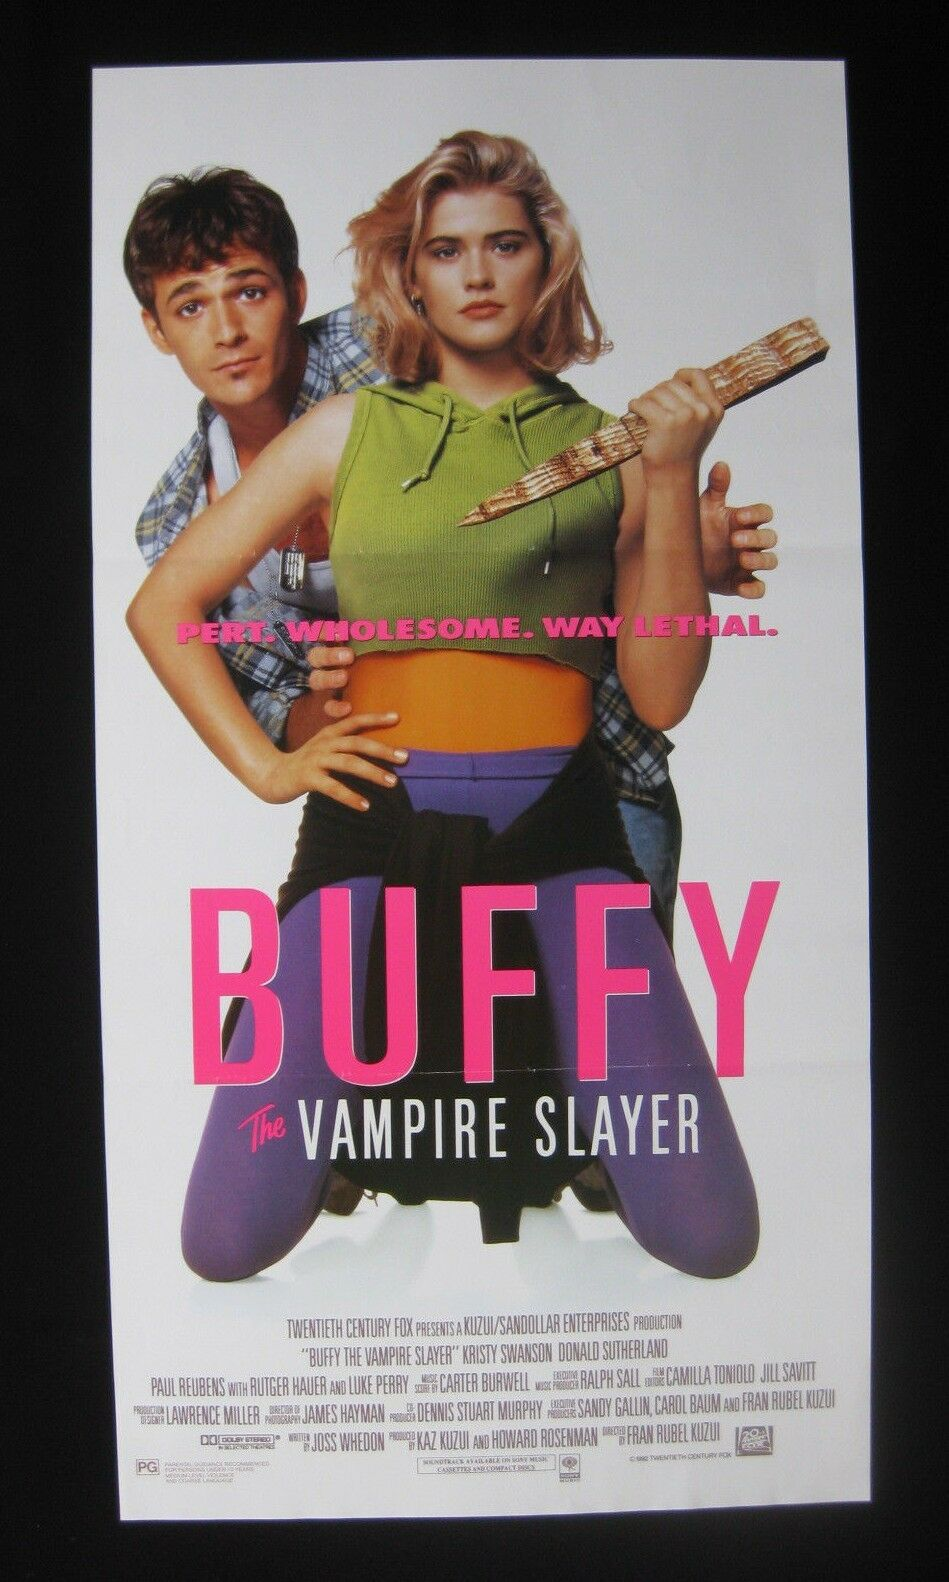 buffy vampire slayer 1992 orig australian daybill movie